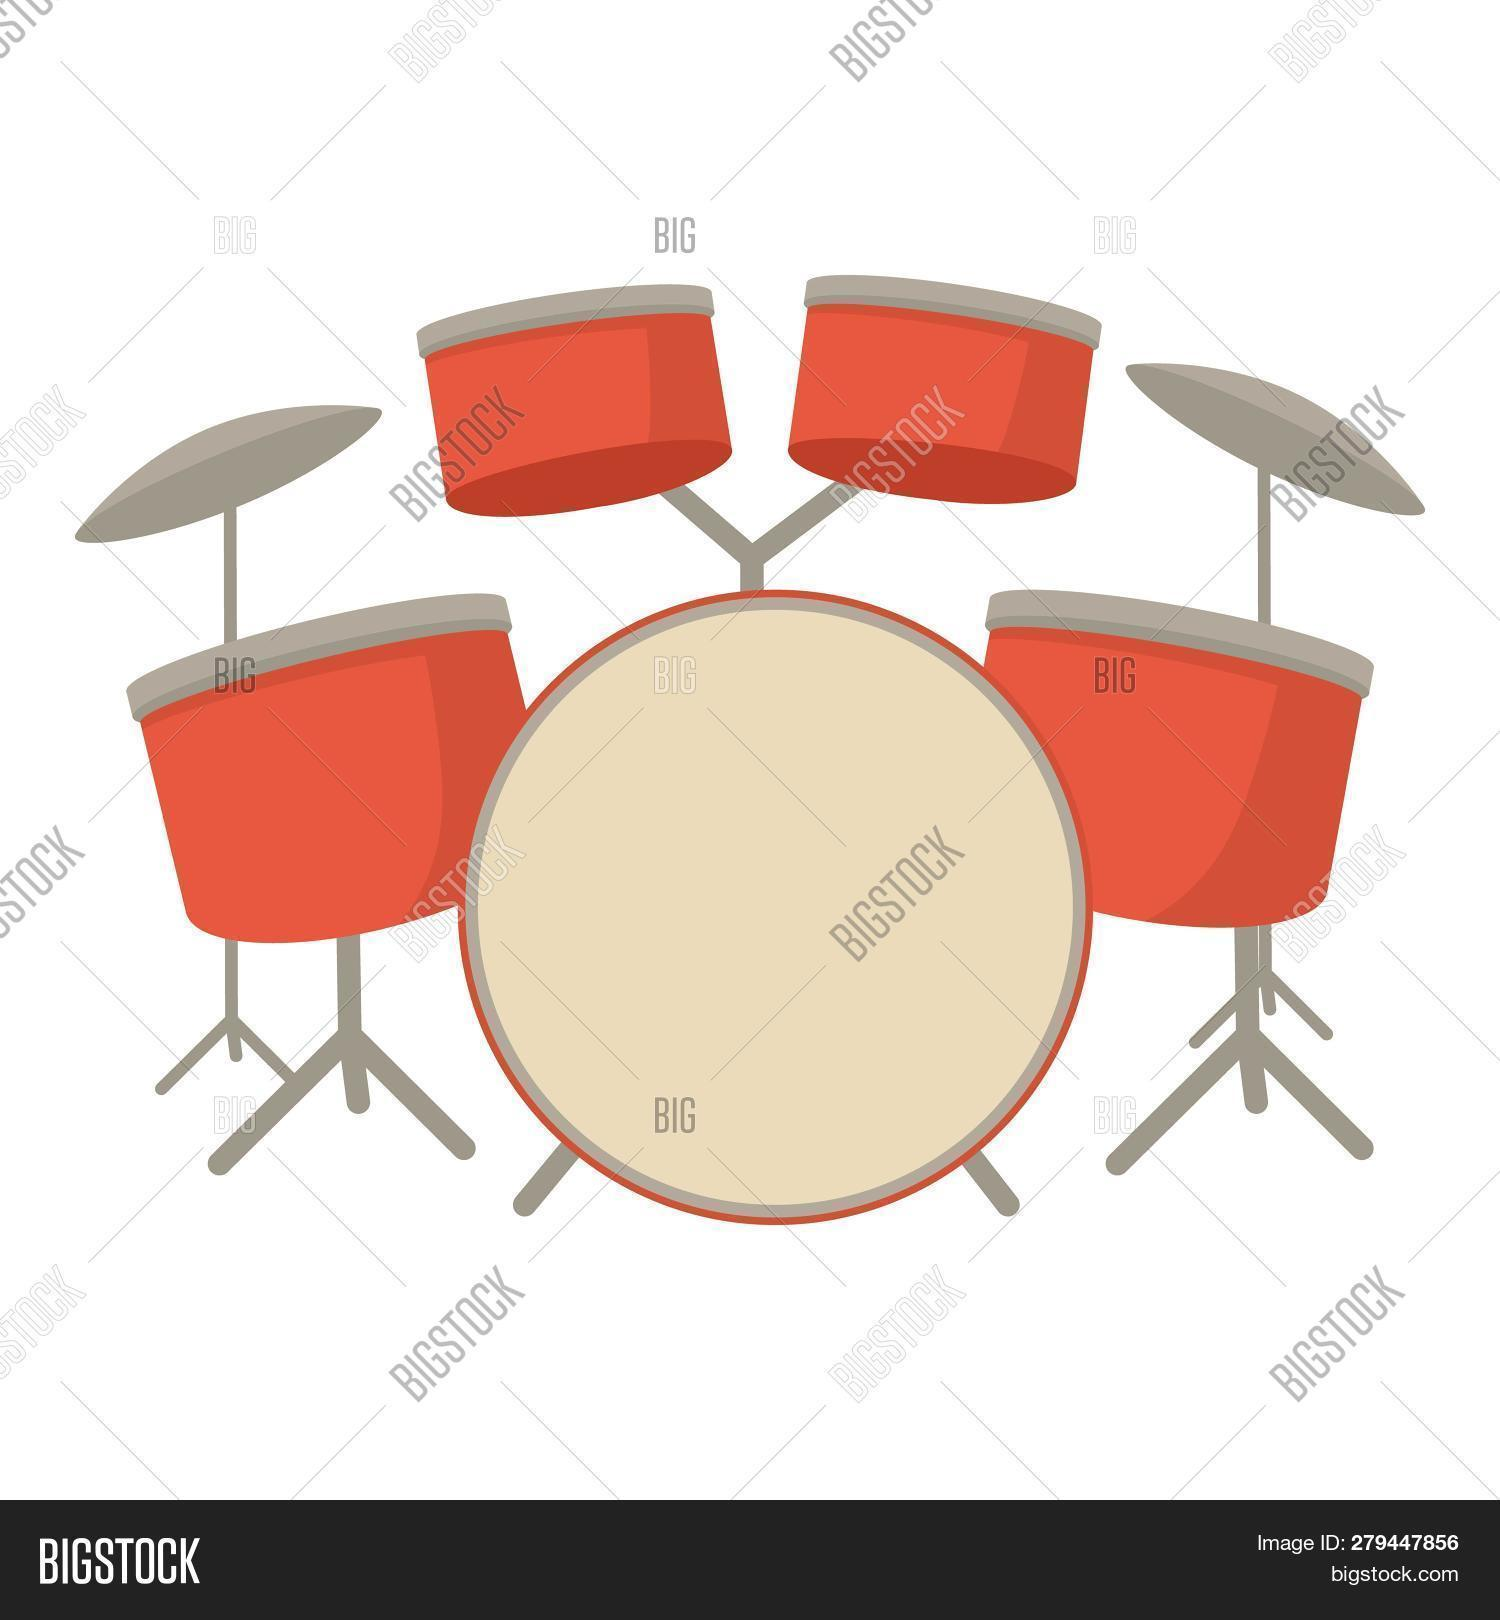 hight resolution of drum set icon cartoon illustration of drum set icon for web